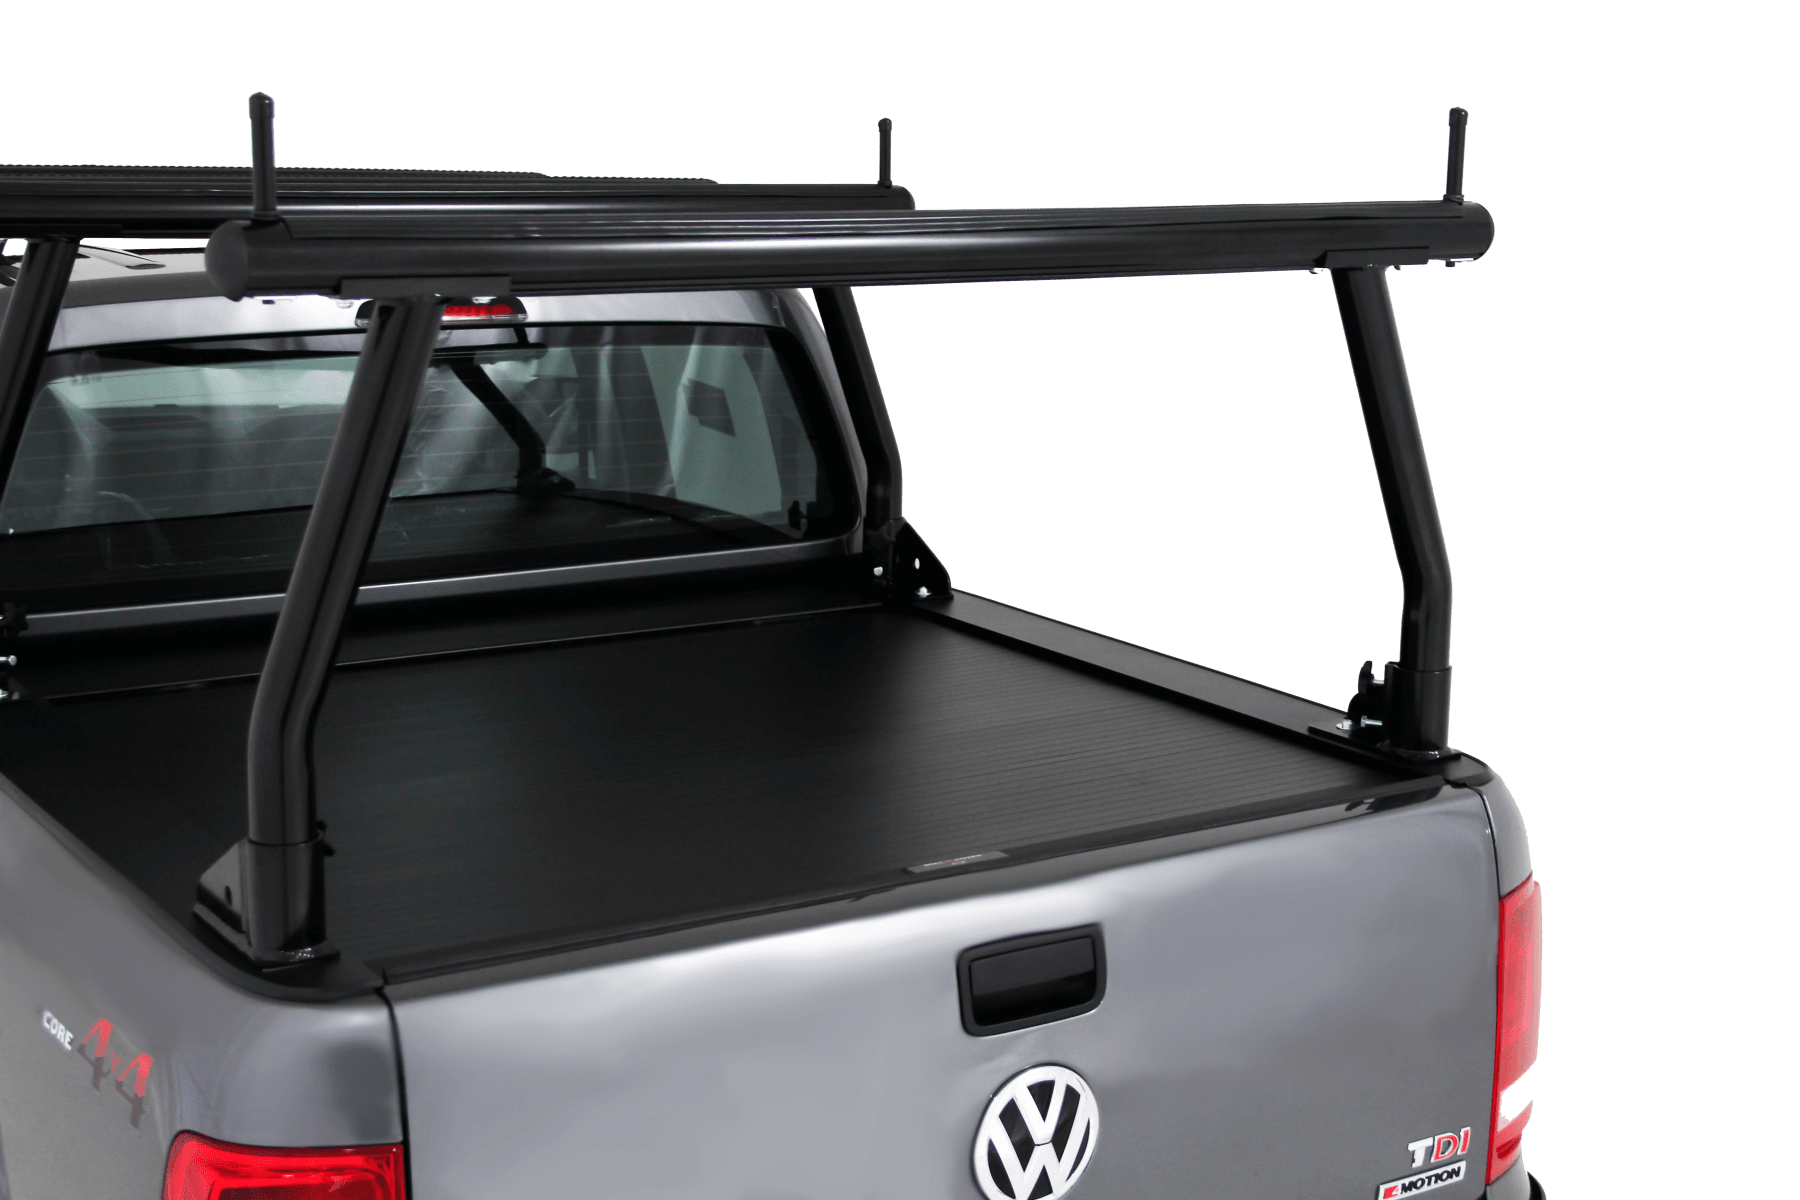 VMN also offers EGR side rails or Yakima Lockn'Load to compliment your UTE hard lid and increase your rack's carrying capacity.